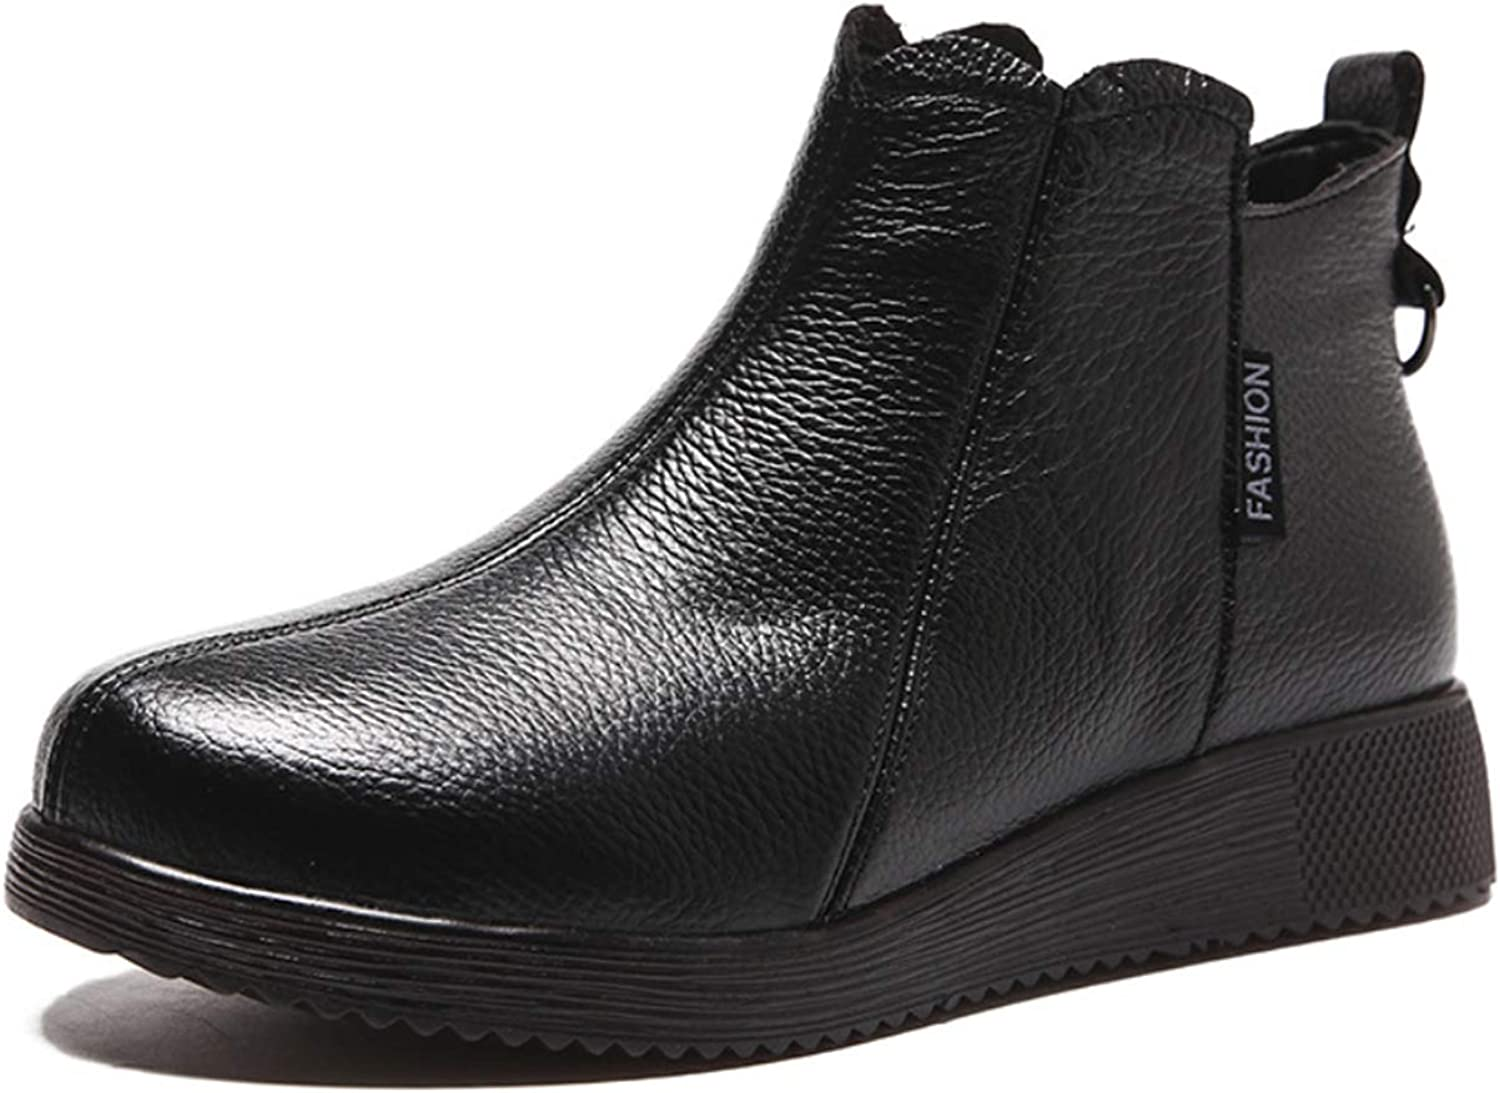 Women's ankle boots full round leather retro booties in upper layer European and American style national autumn and winter new flat shoes,Black,38EU